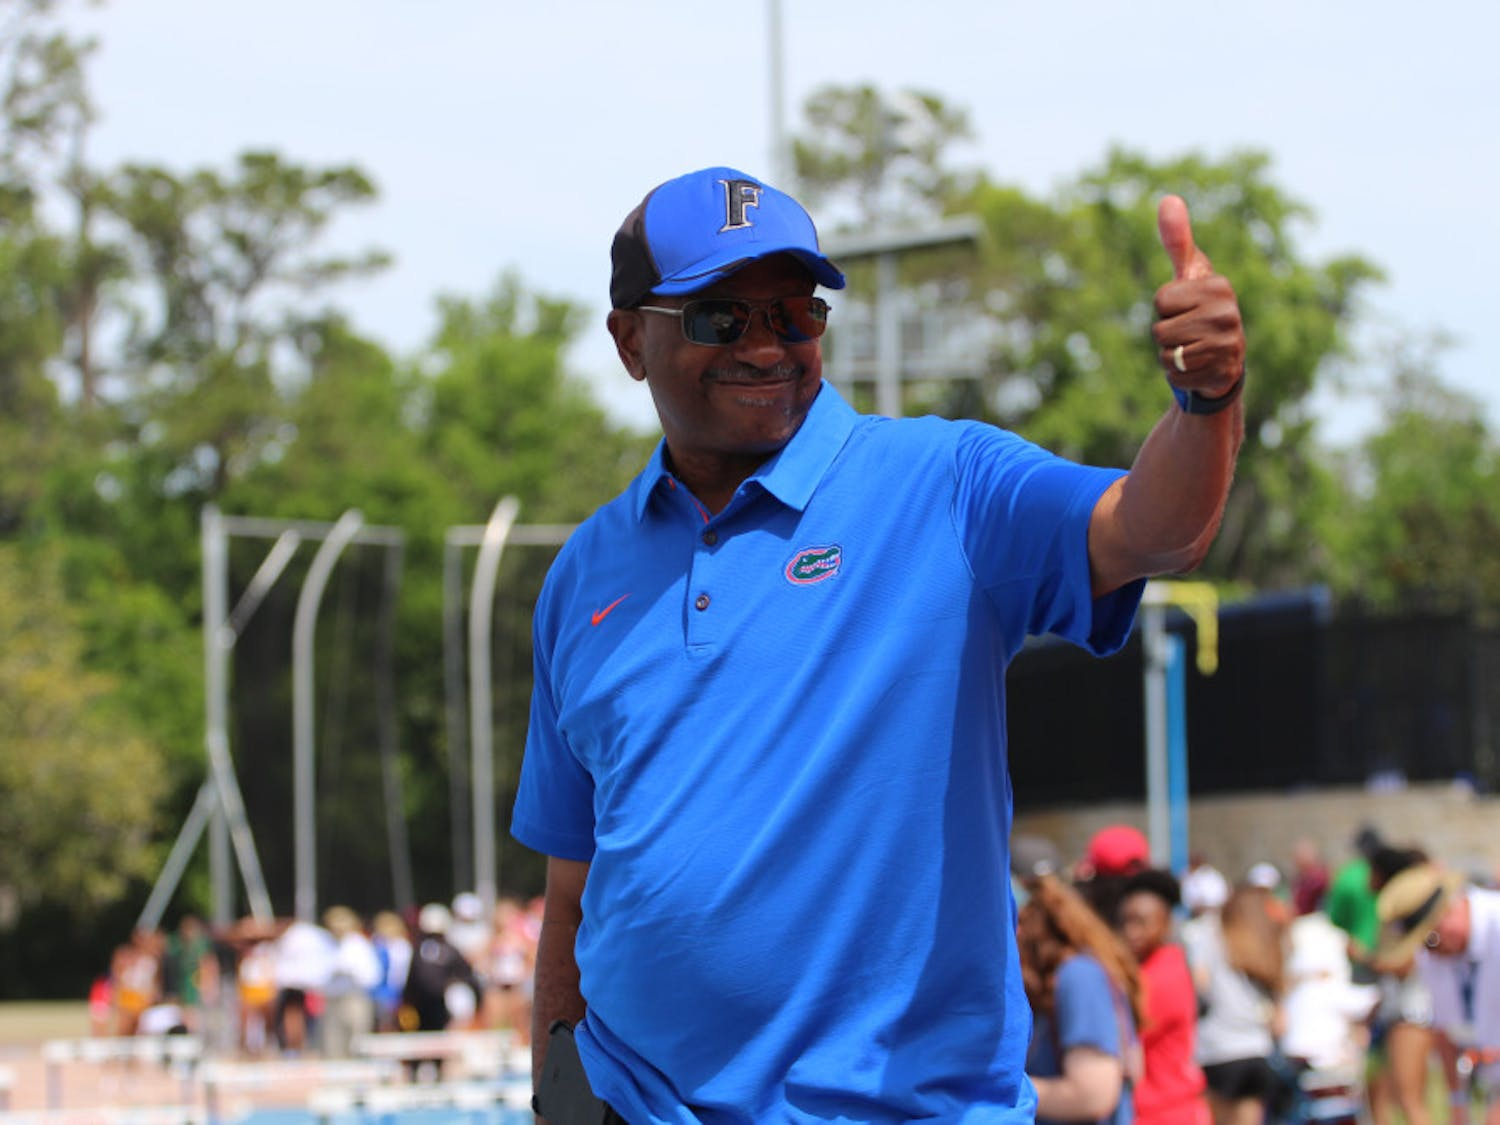 UF track and field coach Mike Holloway led the men's team to the indoor national championship and the women's team to a top-10 ranking.